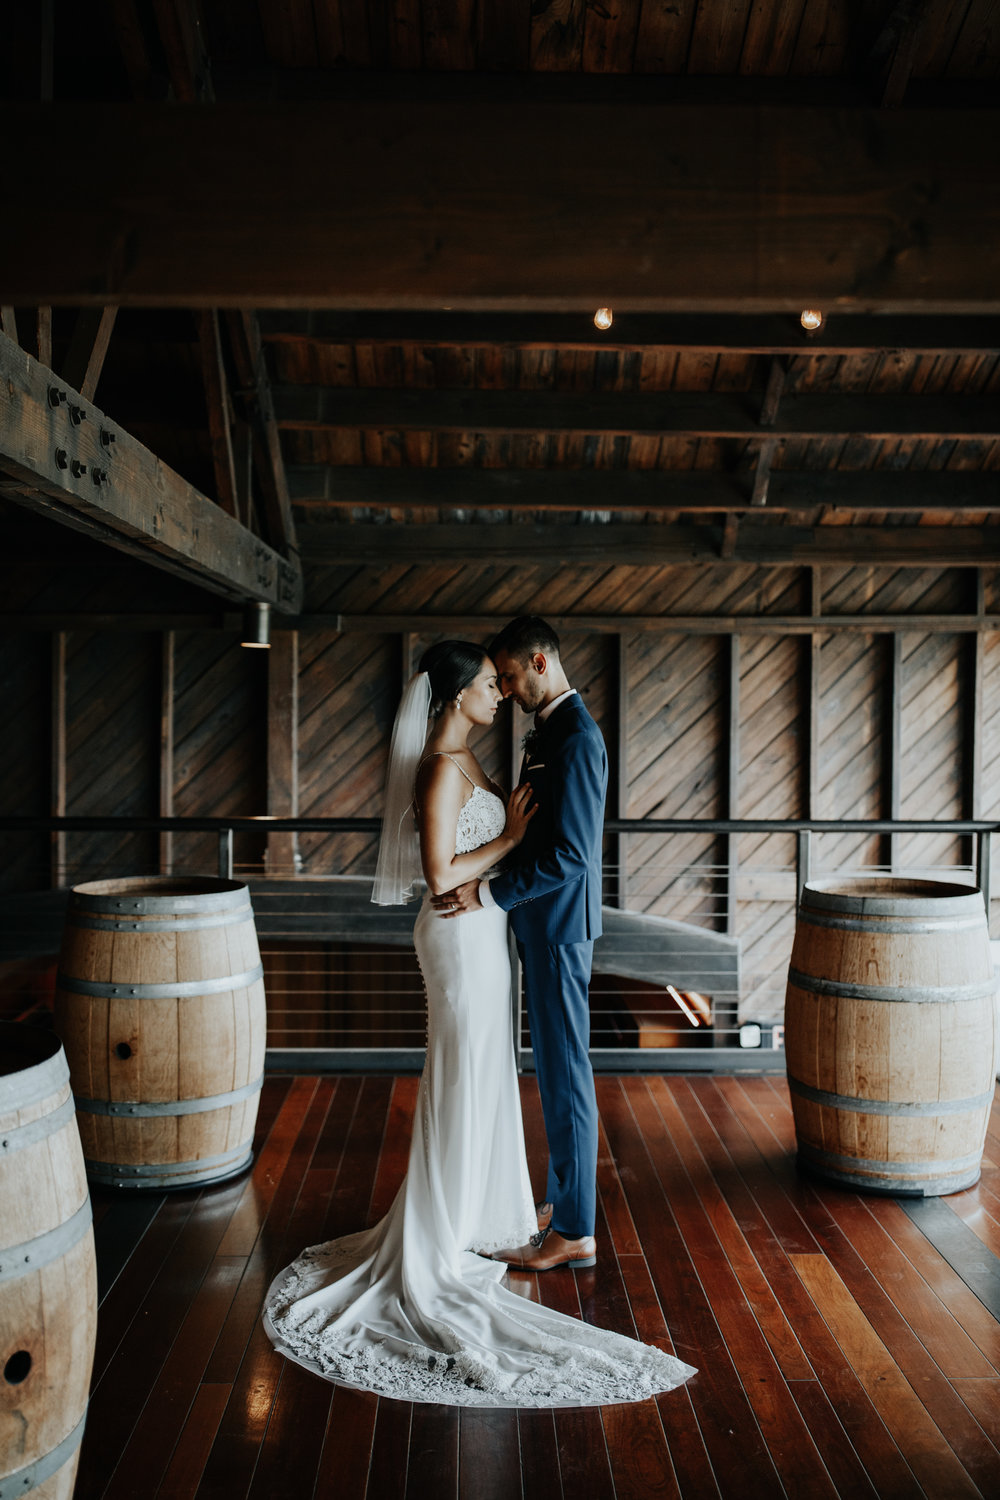 Saltwater-Farm-Vineyard-Wedding-56.jpg